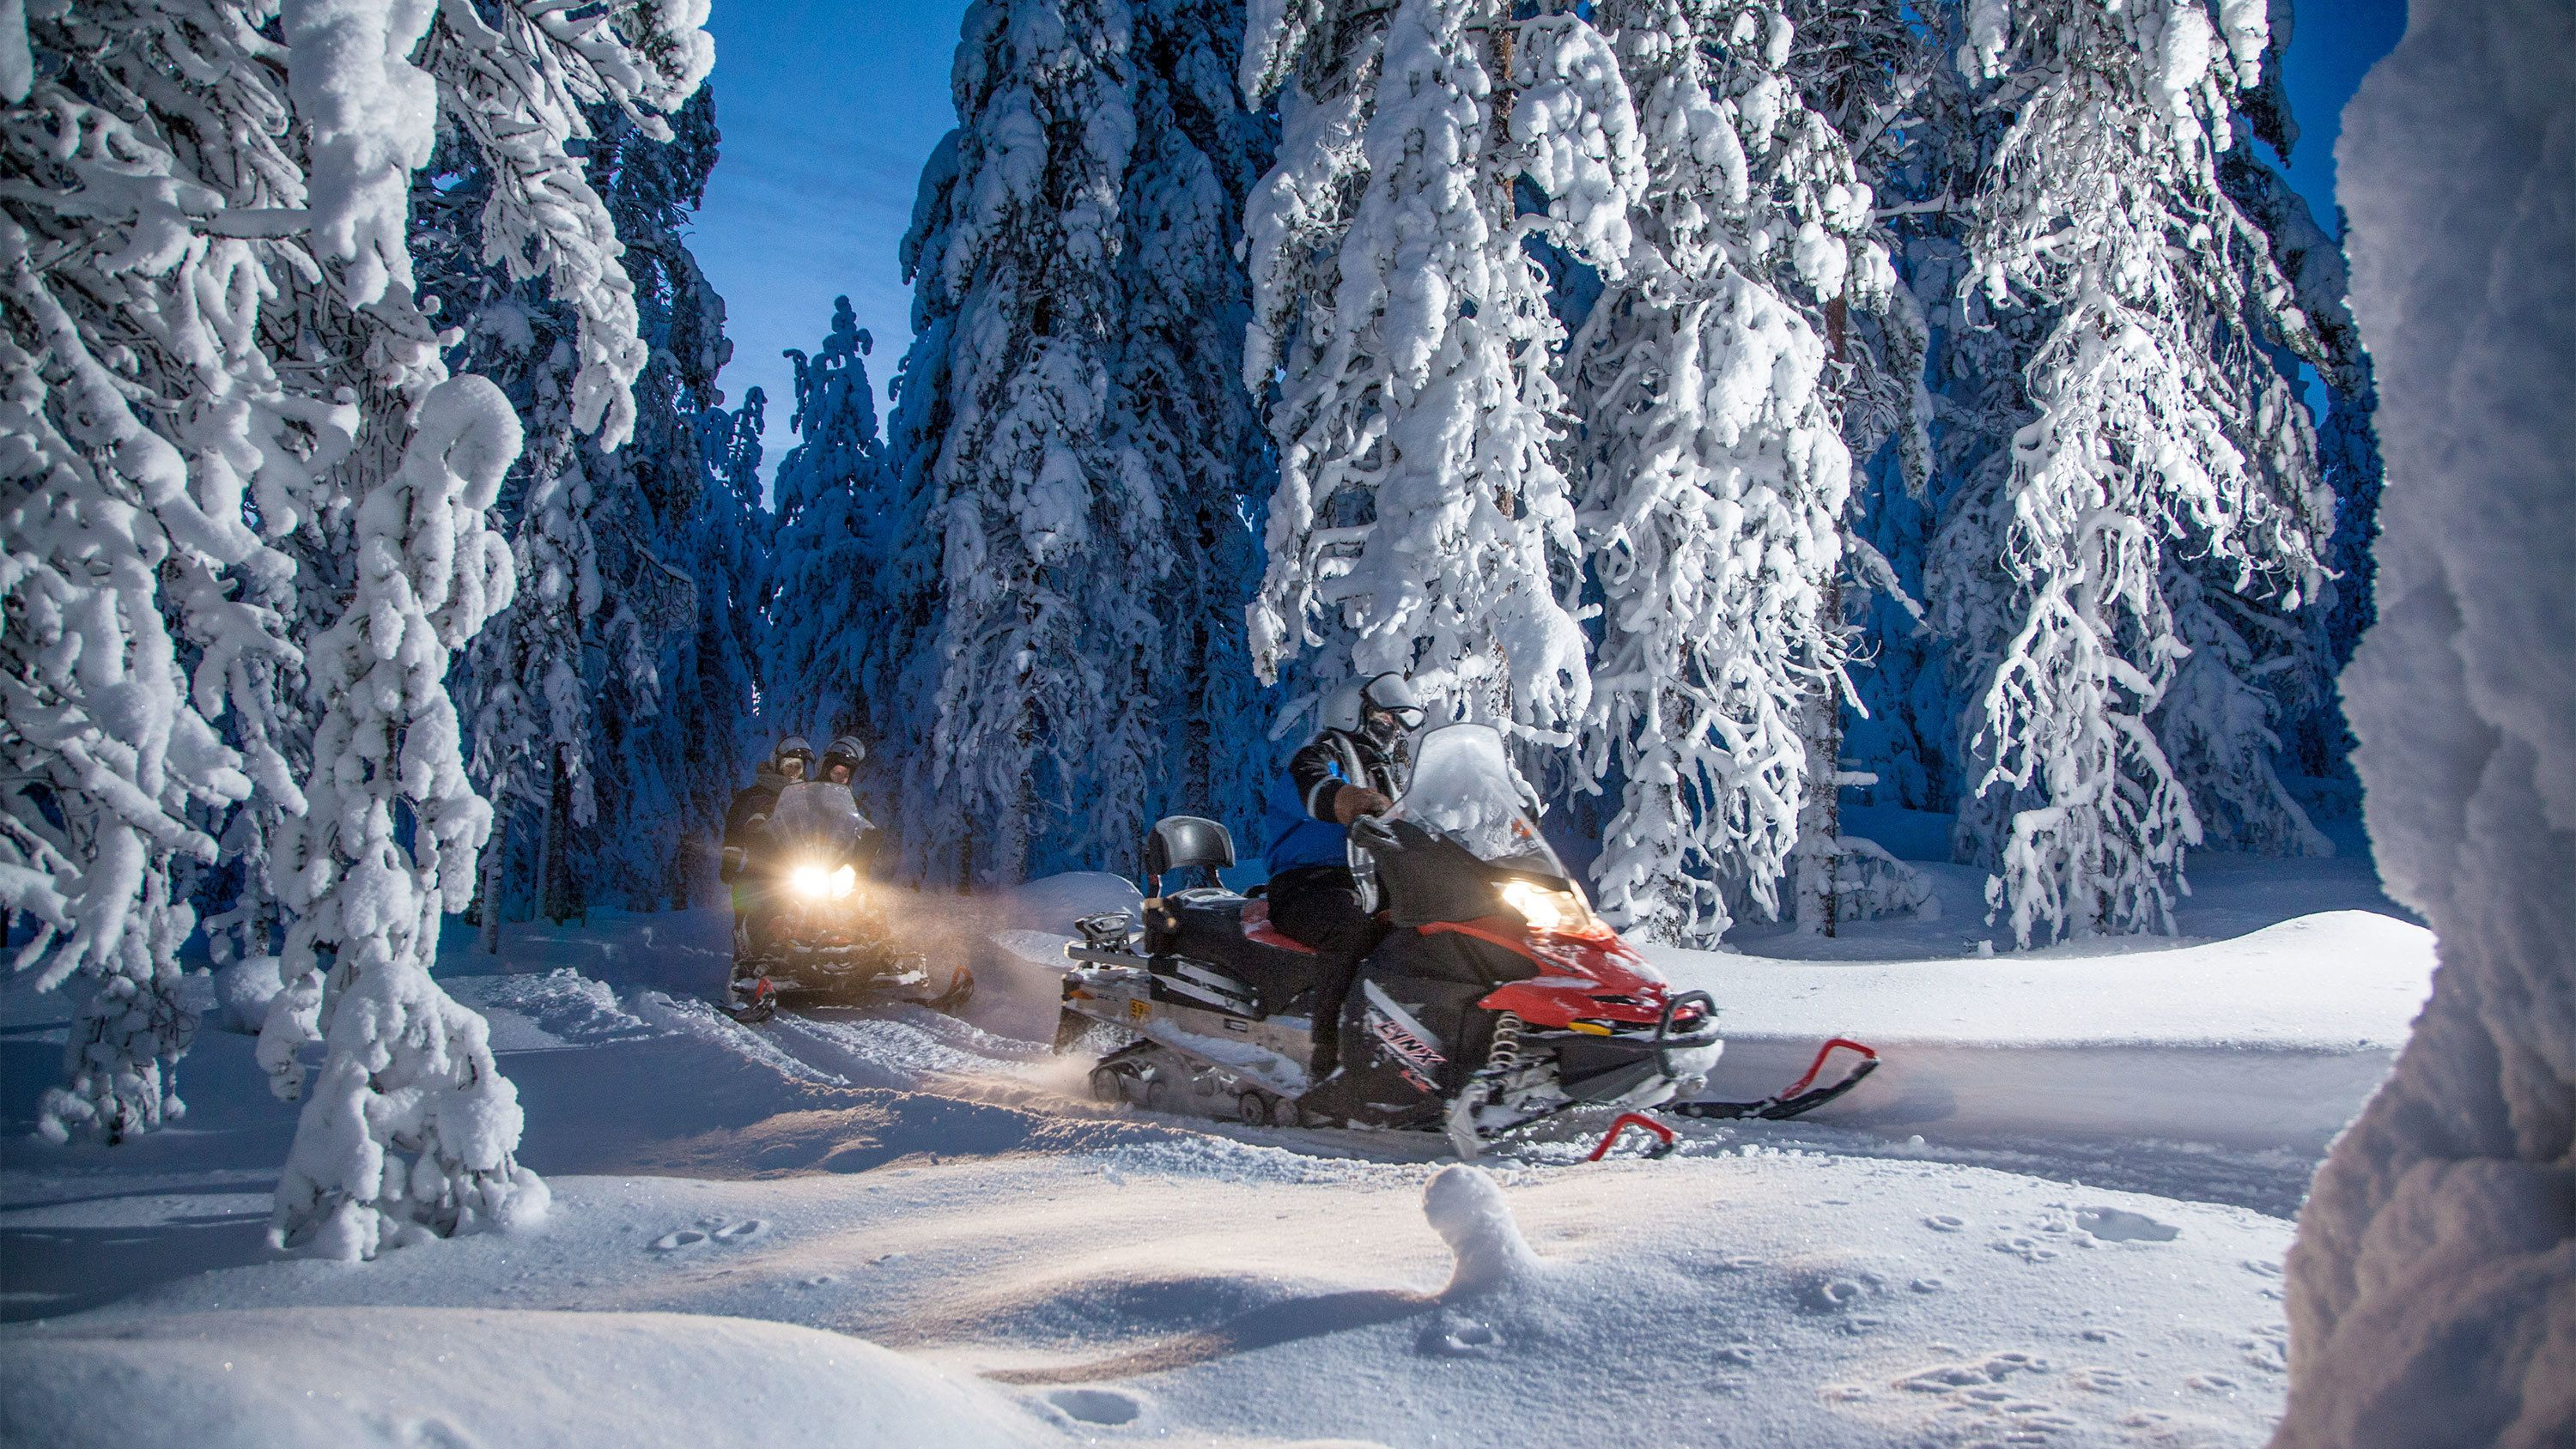 View of a group snowmobiling in Finland